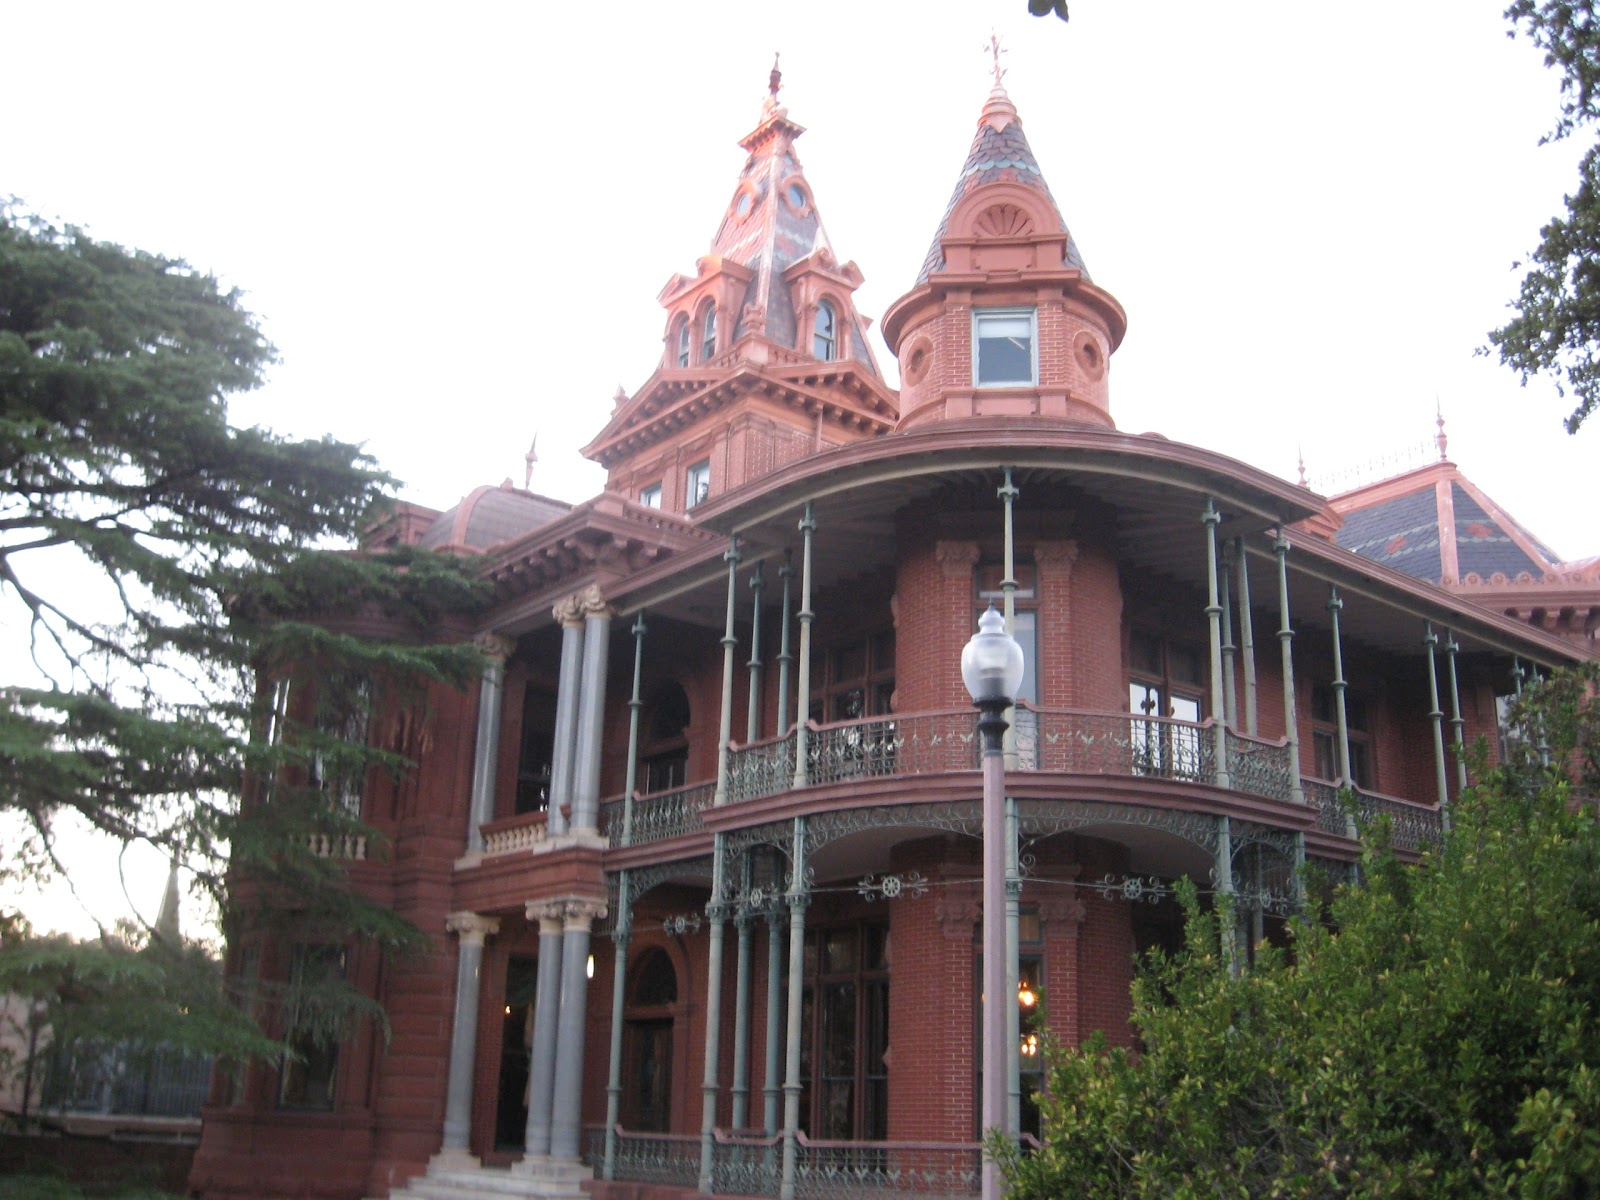 Texas small town adventures haunted houses in austin the littlefield